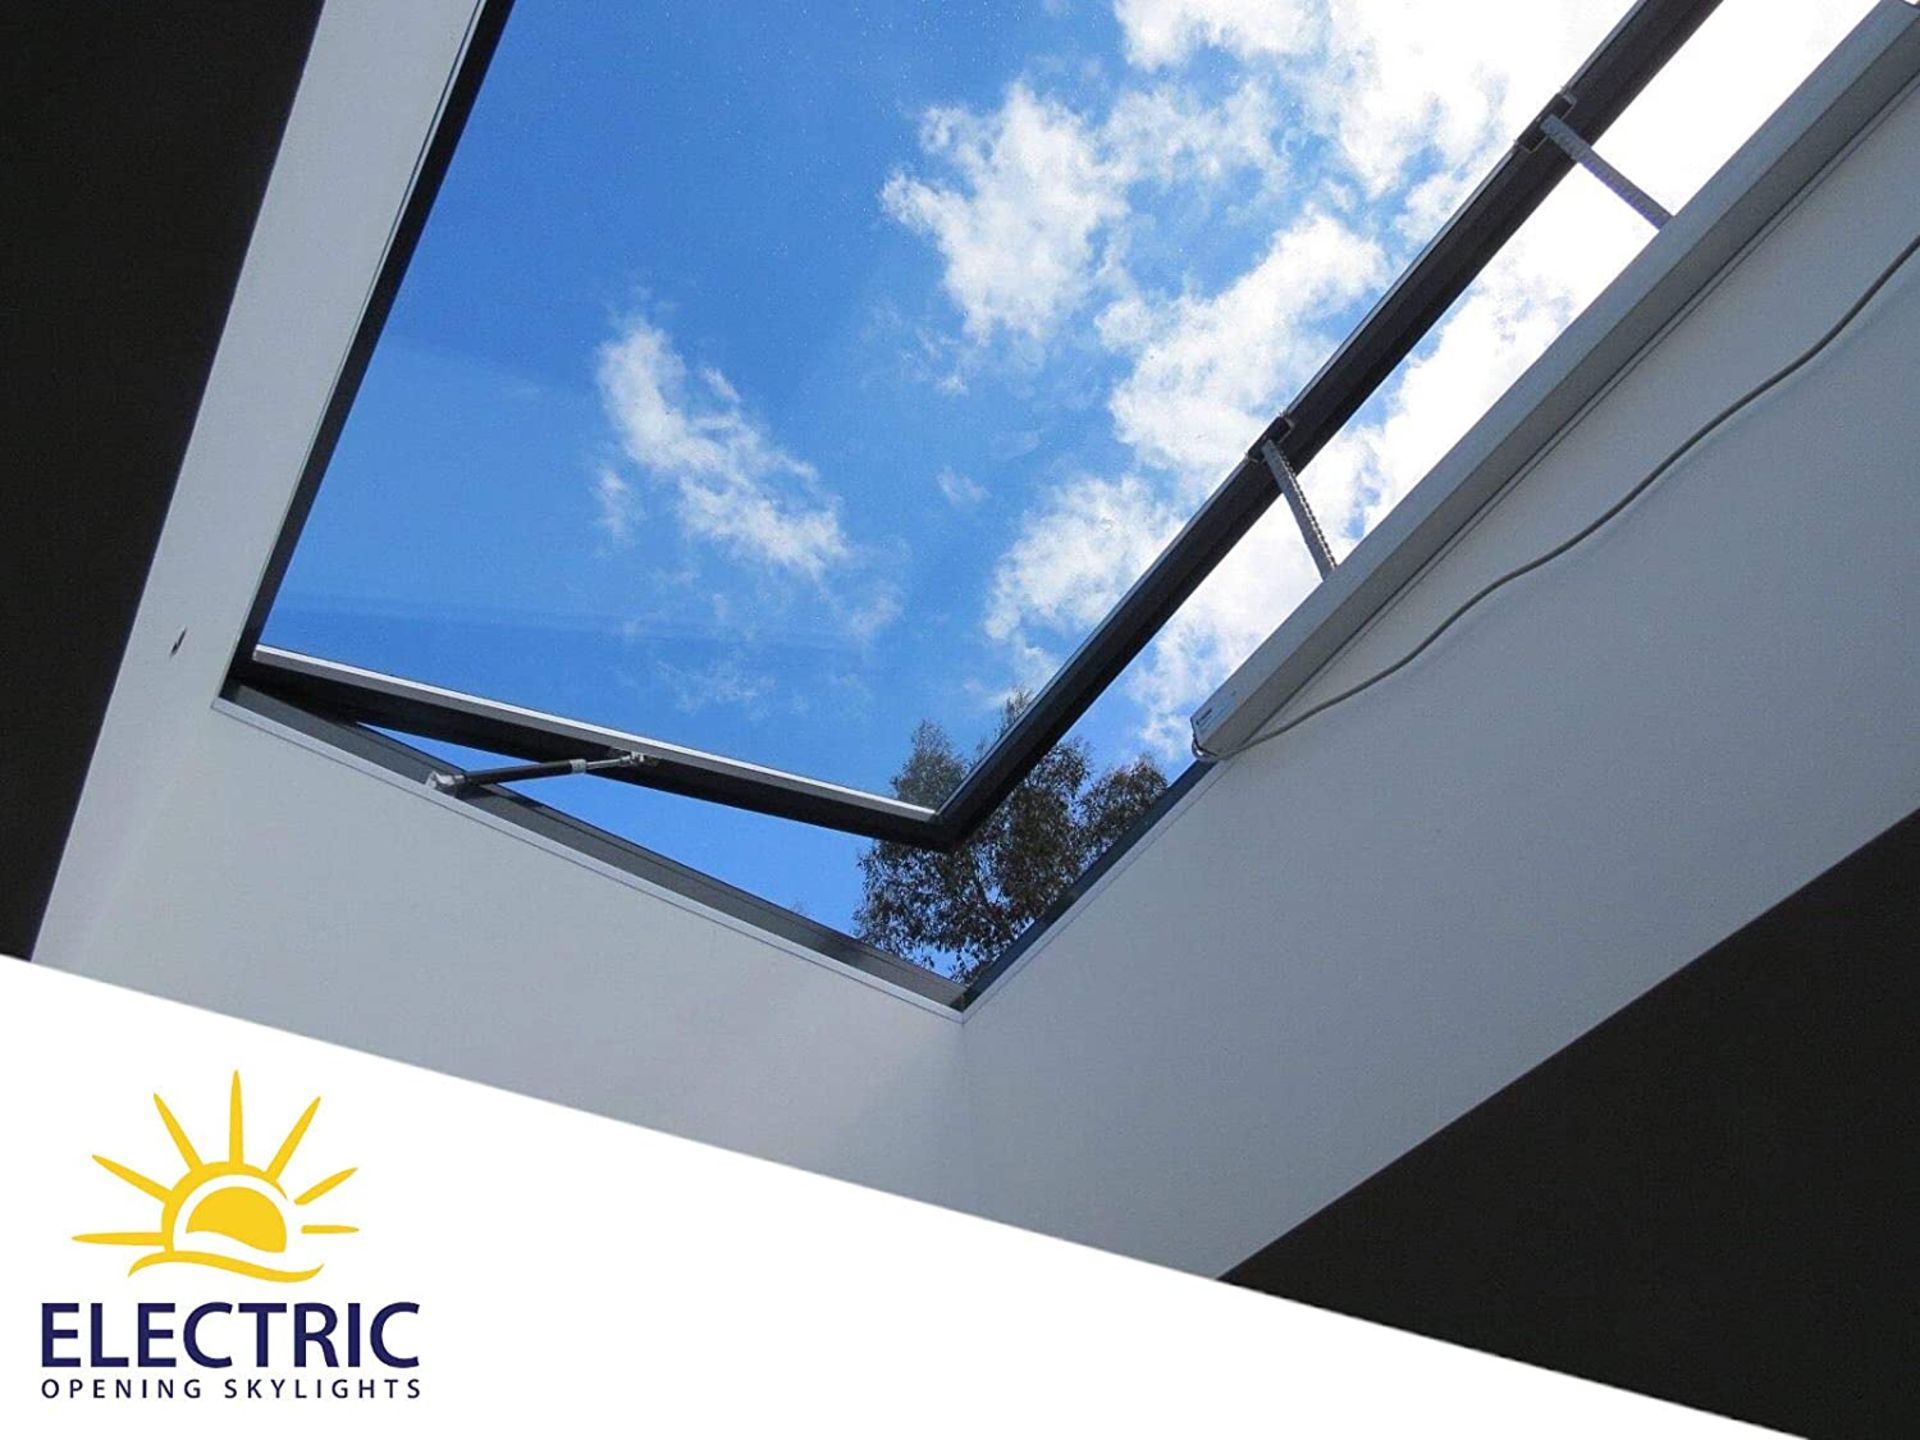 Panoroof (EOS) Electric Opening Skylight 600x900mm - Aluminiun Frame Double Glazed Laminated Self- - Image 2 of 6